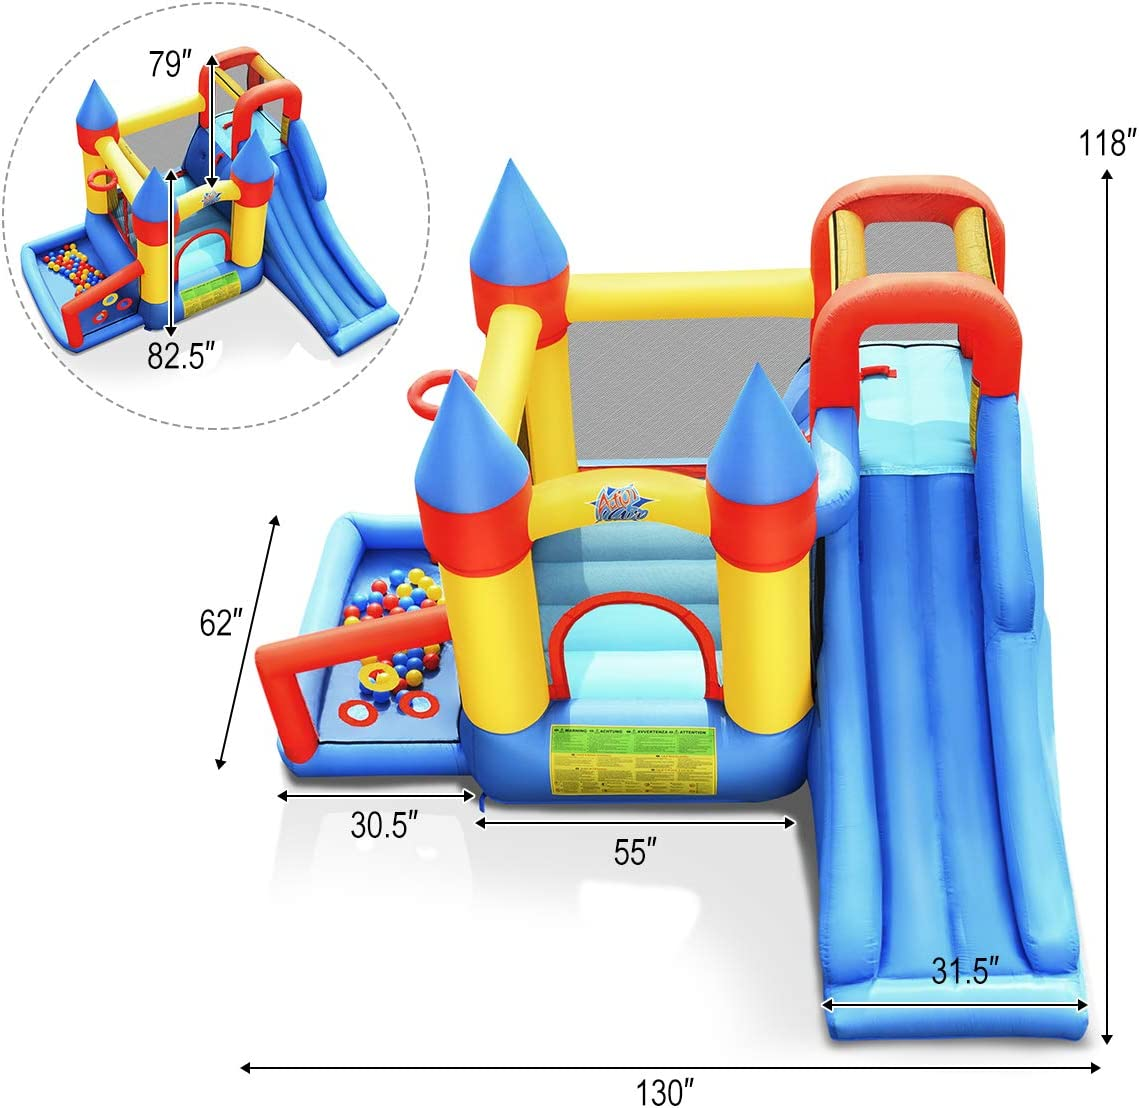 with 740W Air Blower HONEY JOY Inflatable Bounce House Repair Kit 50 Ocean Balls Stakes Kids Jumping Castle Bouncer w//Slides Includes Carry Bag Outdoor Indoor Party Play House w// Basketball Rim